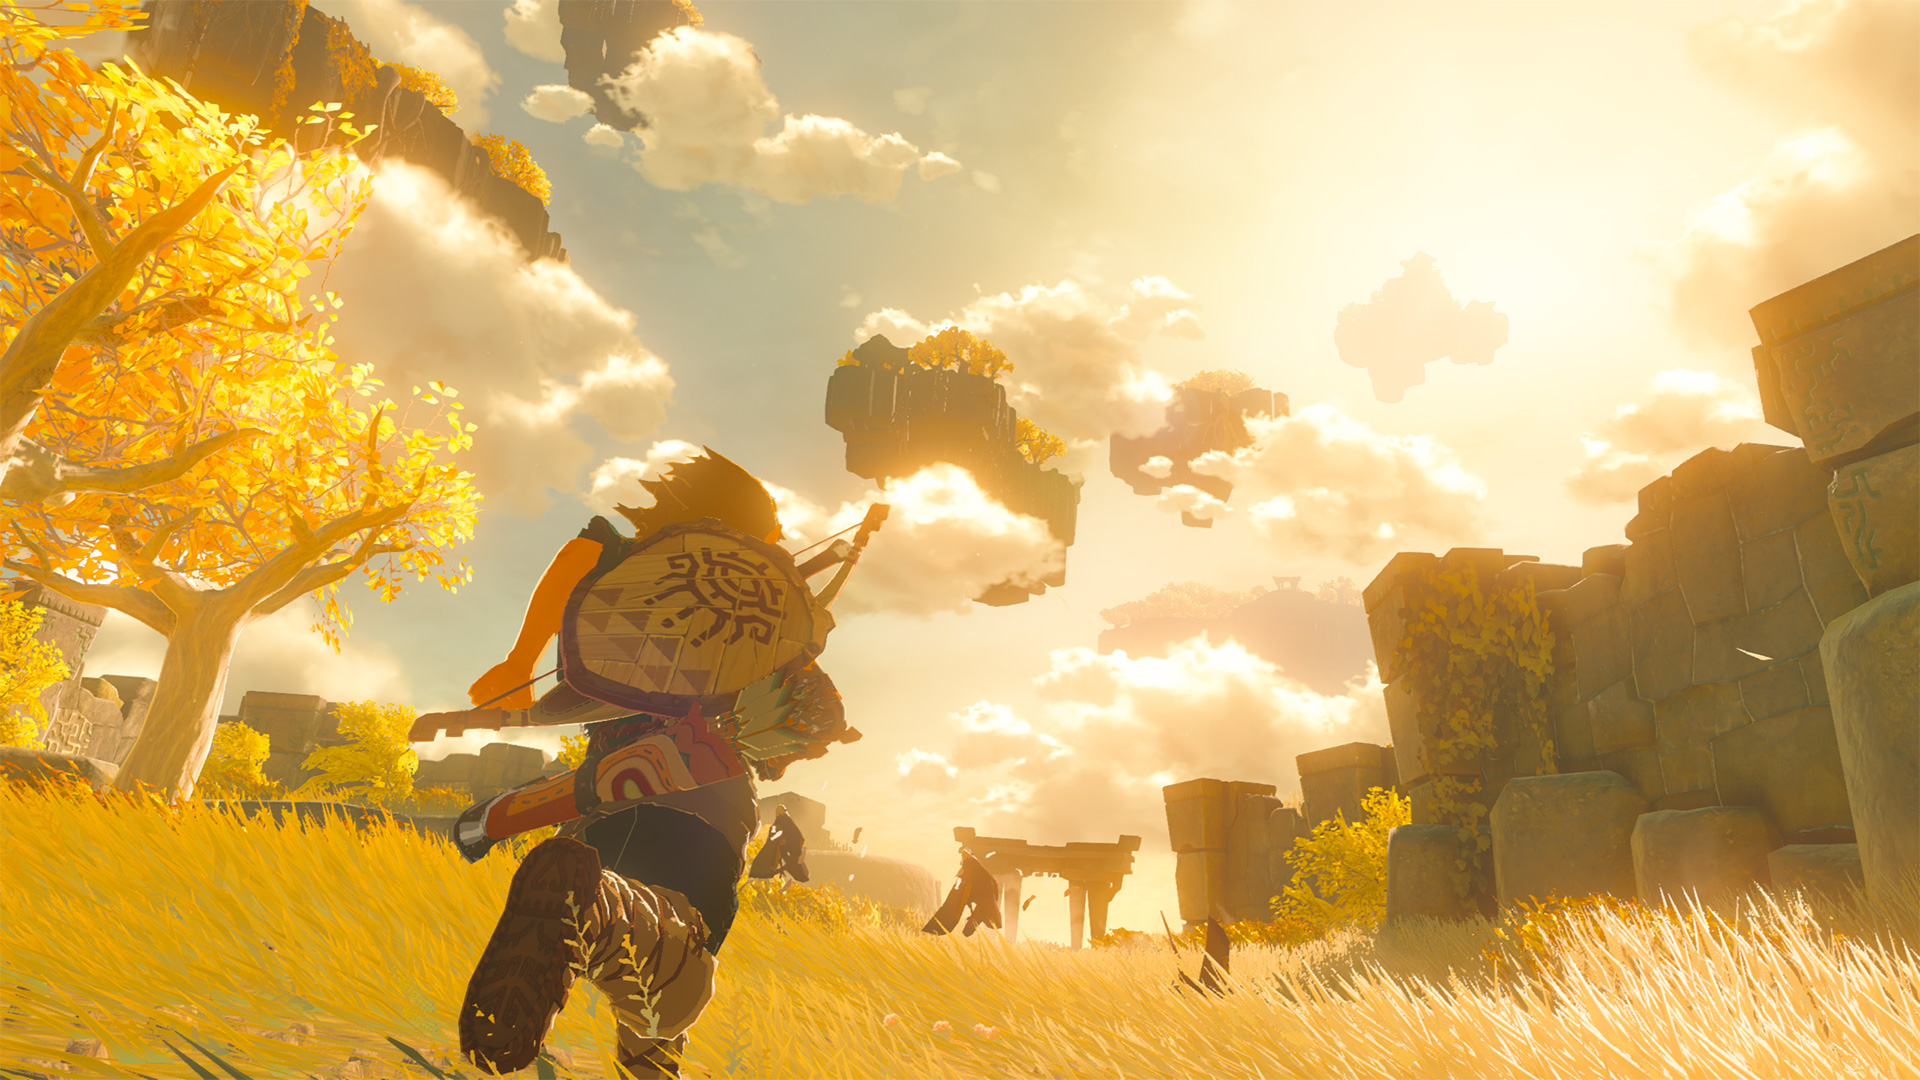 Link running through a field of golden grass in the sequel to The Legend of Zelda: Breath of the Wild